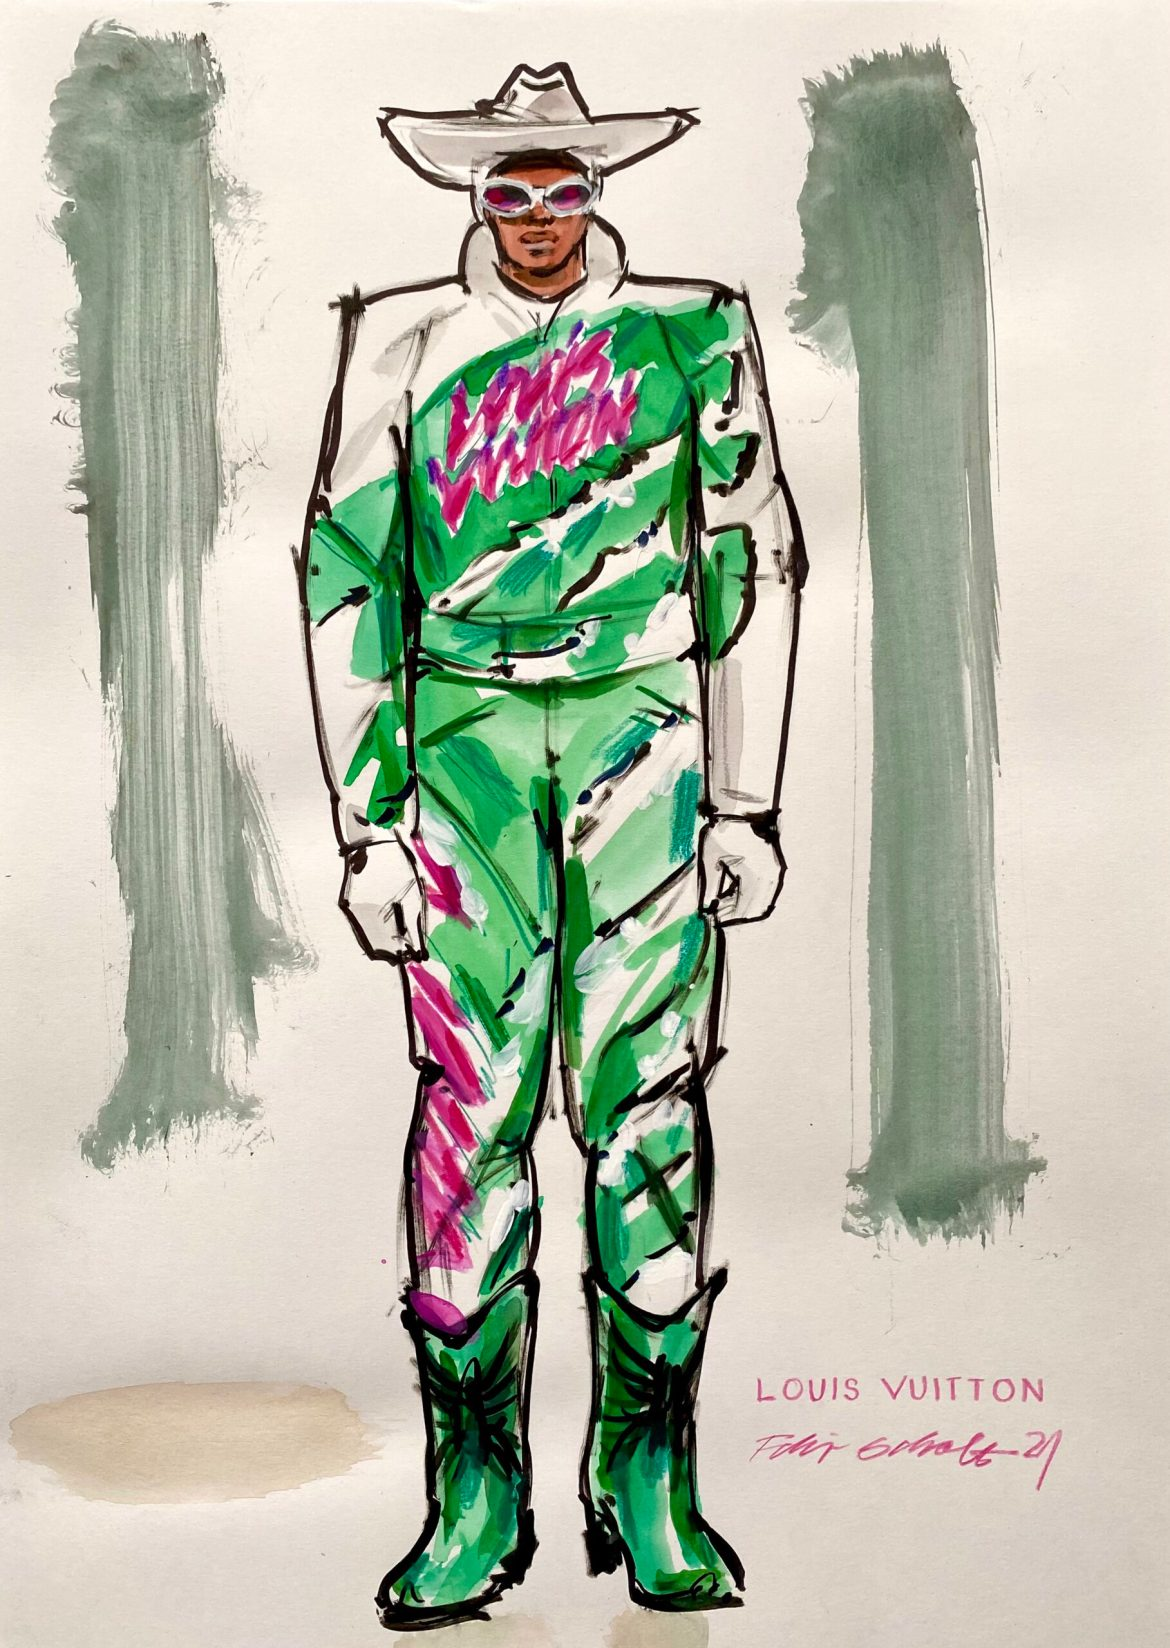 Fashion Illustration of a mal model in a green and pink biker suit